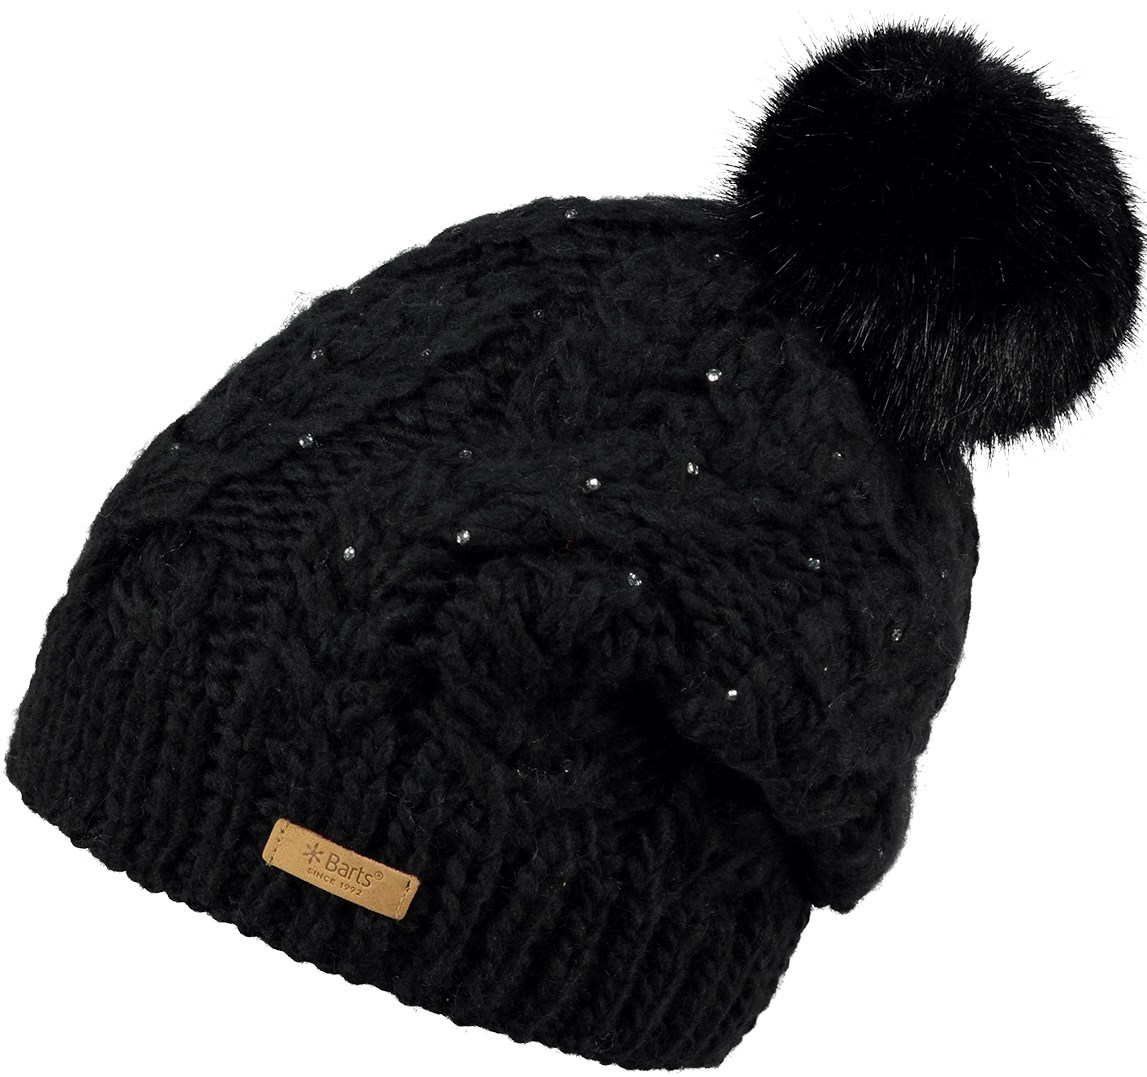 19239bd74f0 Barts Gravel Ladies Pom Pom Beanie Black. 0 (Be the first to add a review!)